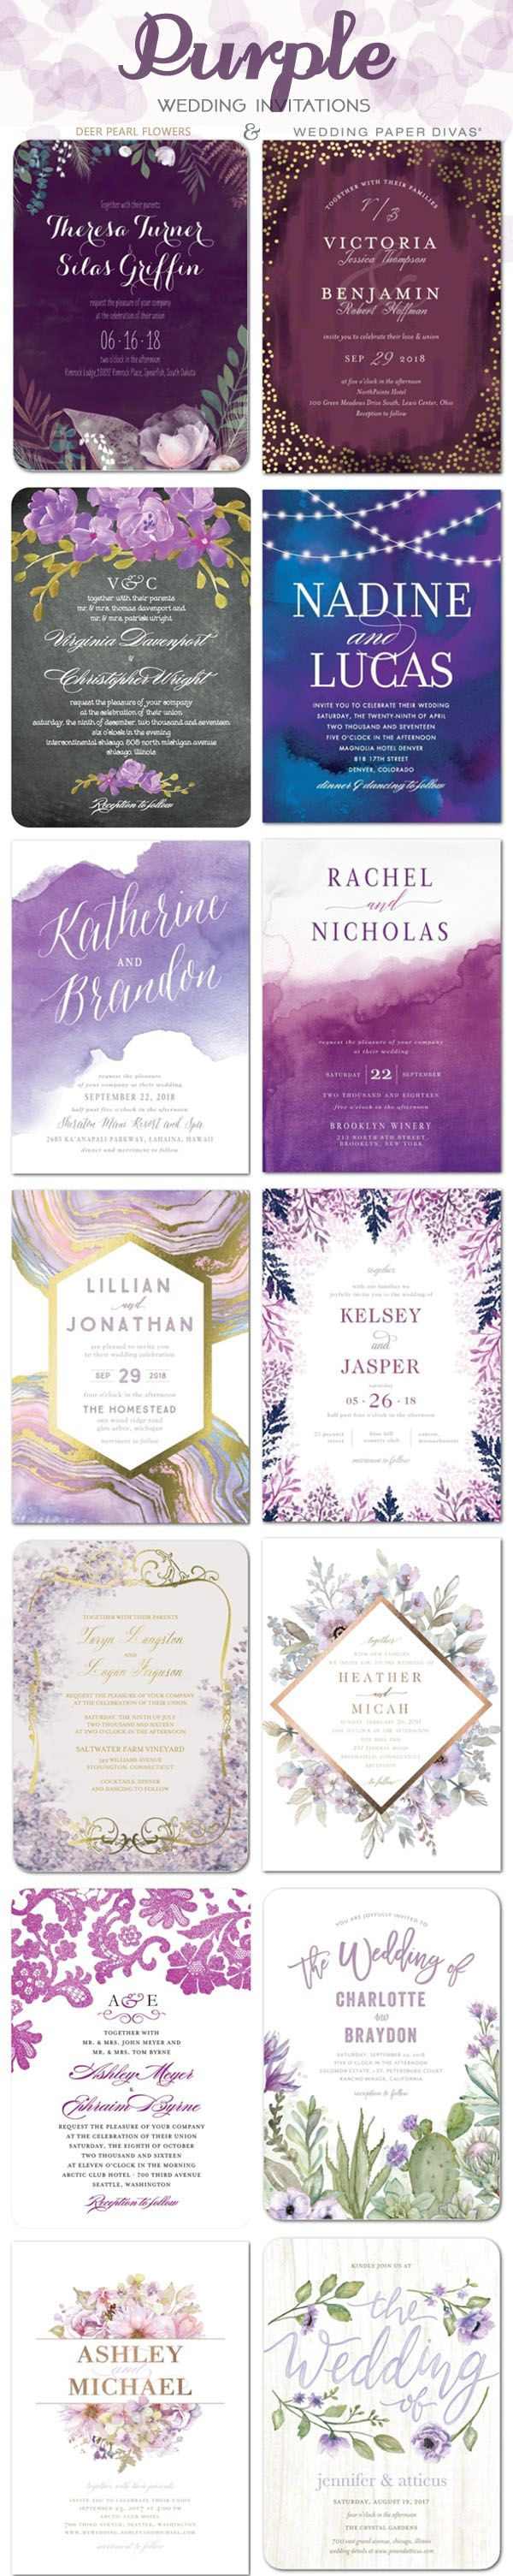 Top 8 themed shutterfly wedding invitations purple wedding top 8 themed shutterfly wedding invitations junglespirit Image collections